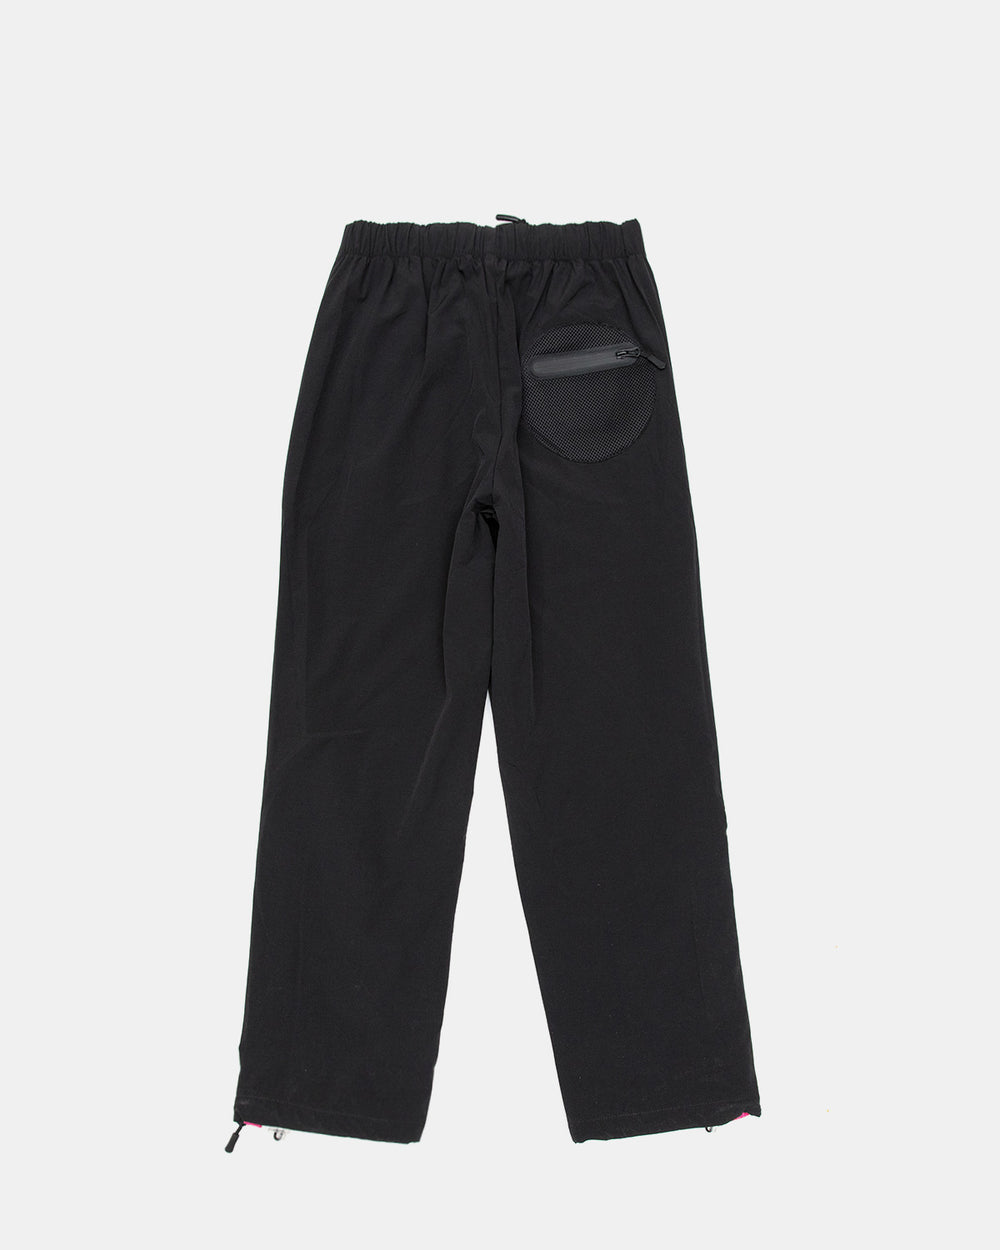 Rokit - Brigade Zip Trackpants (Black)